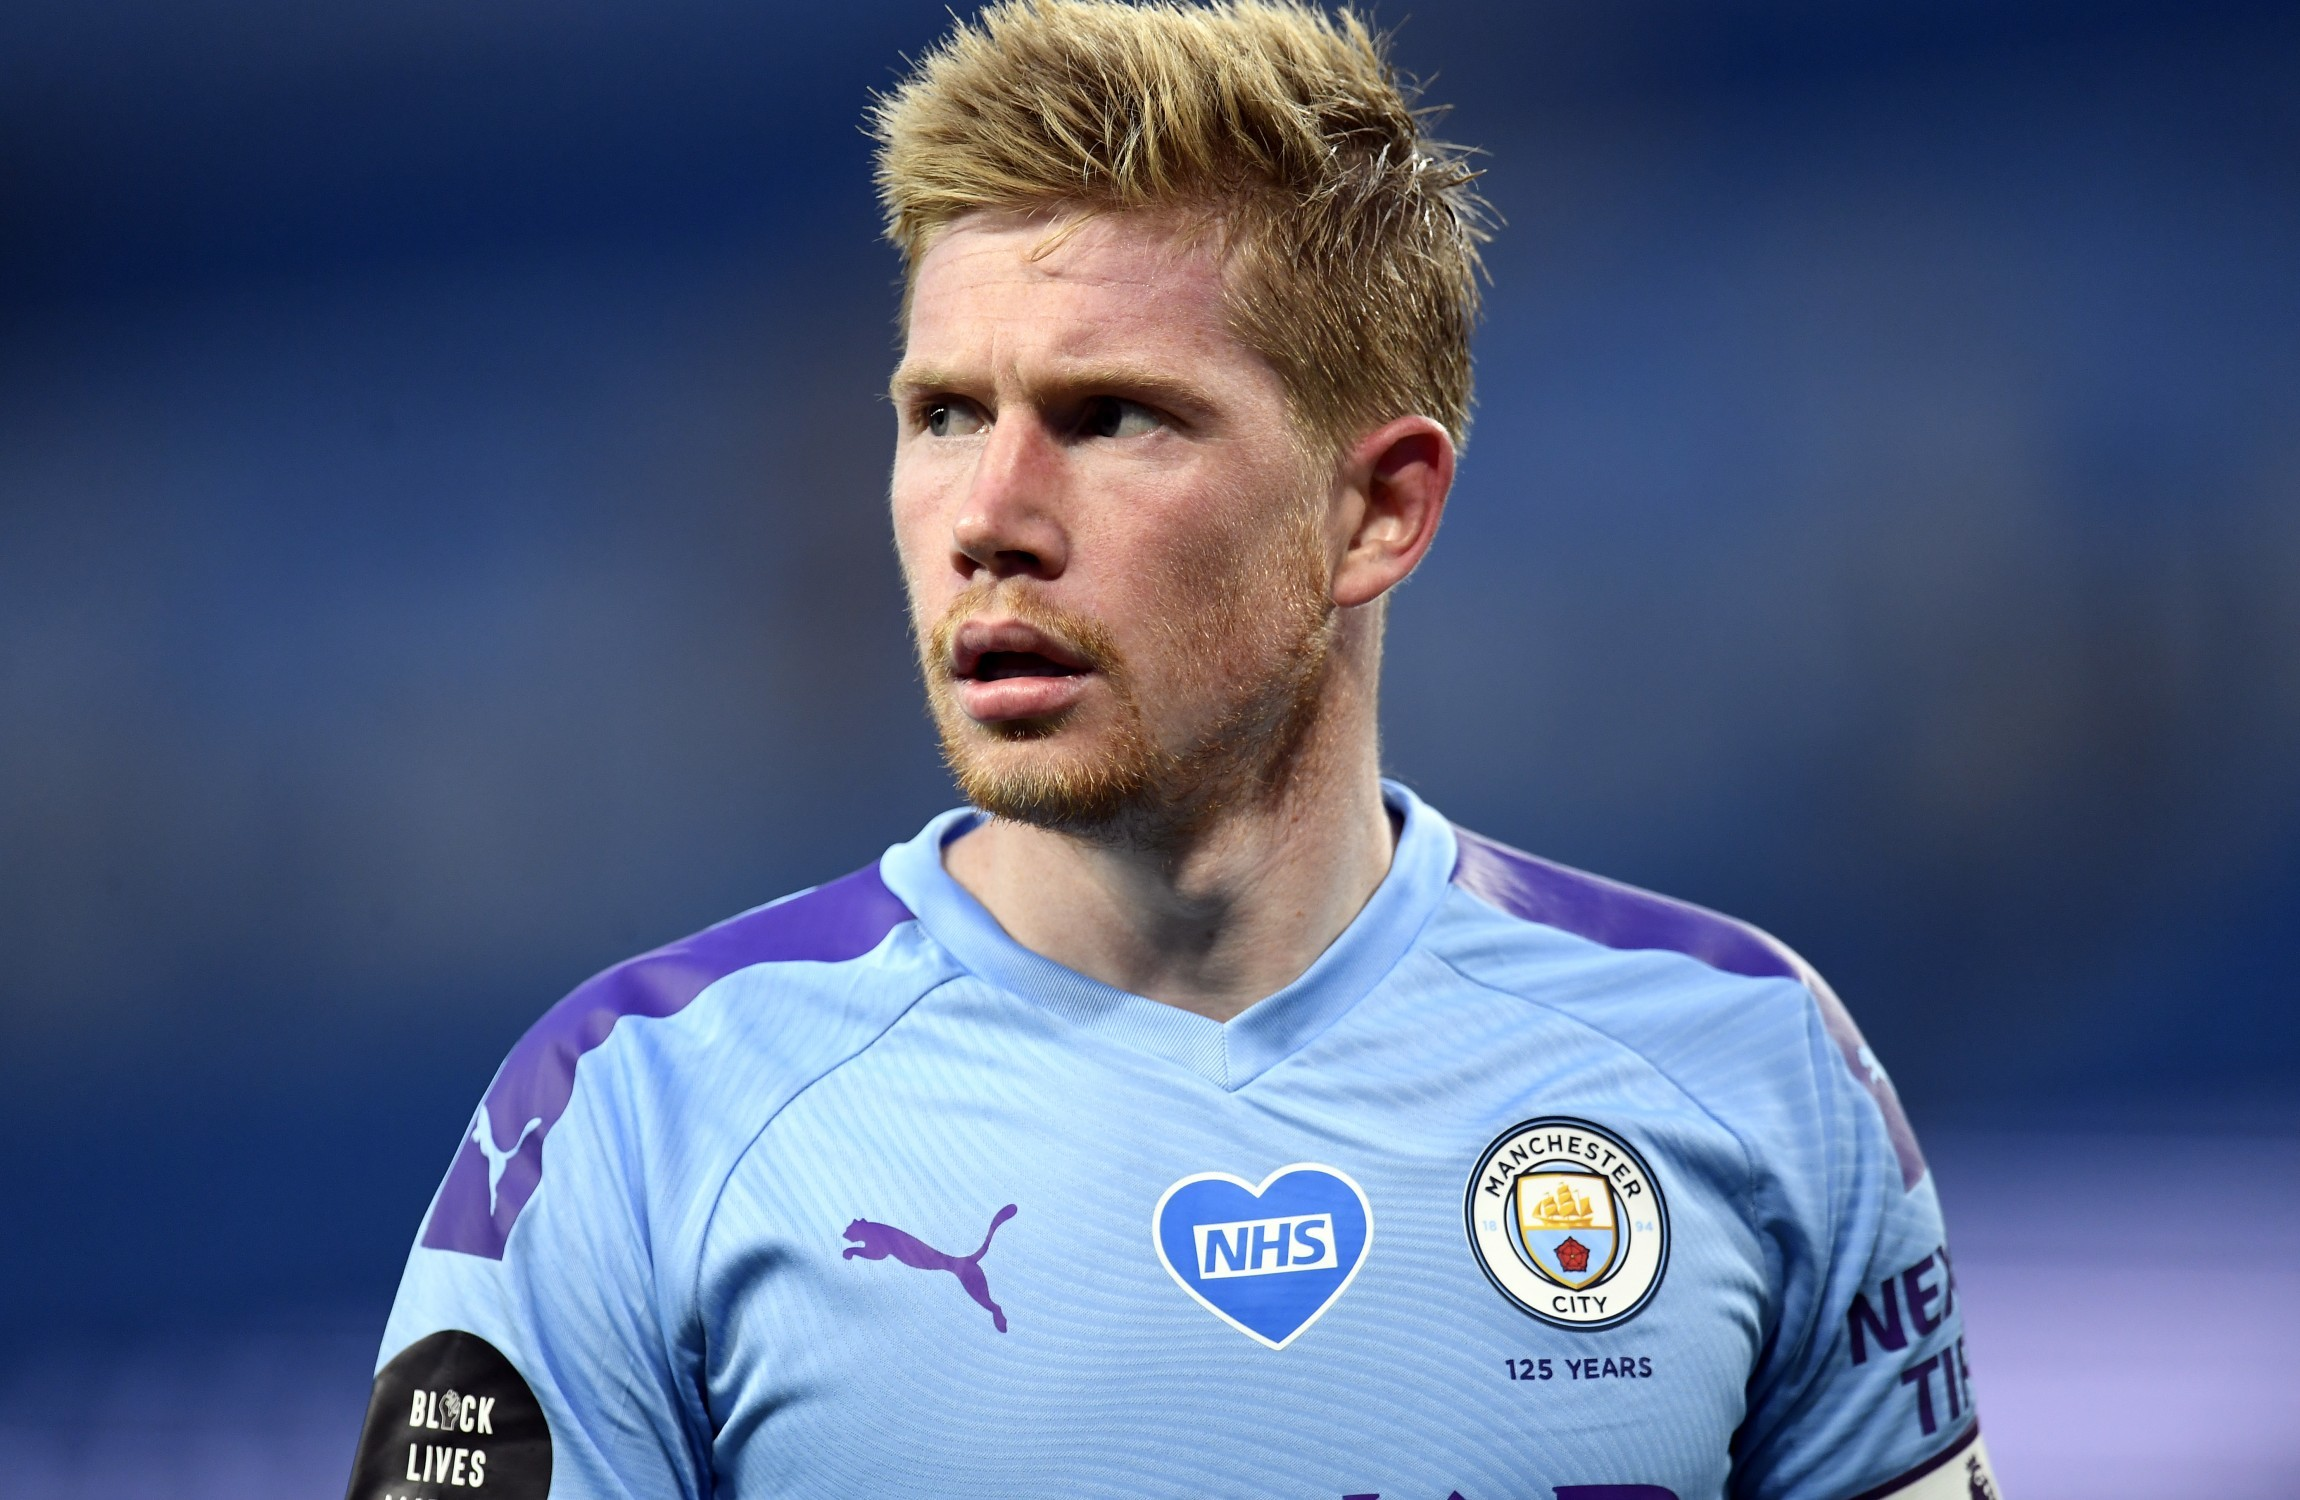 Man City's Kevin De Bruyne scoops PFA Player of the Year prize